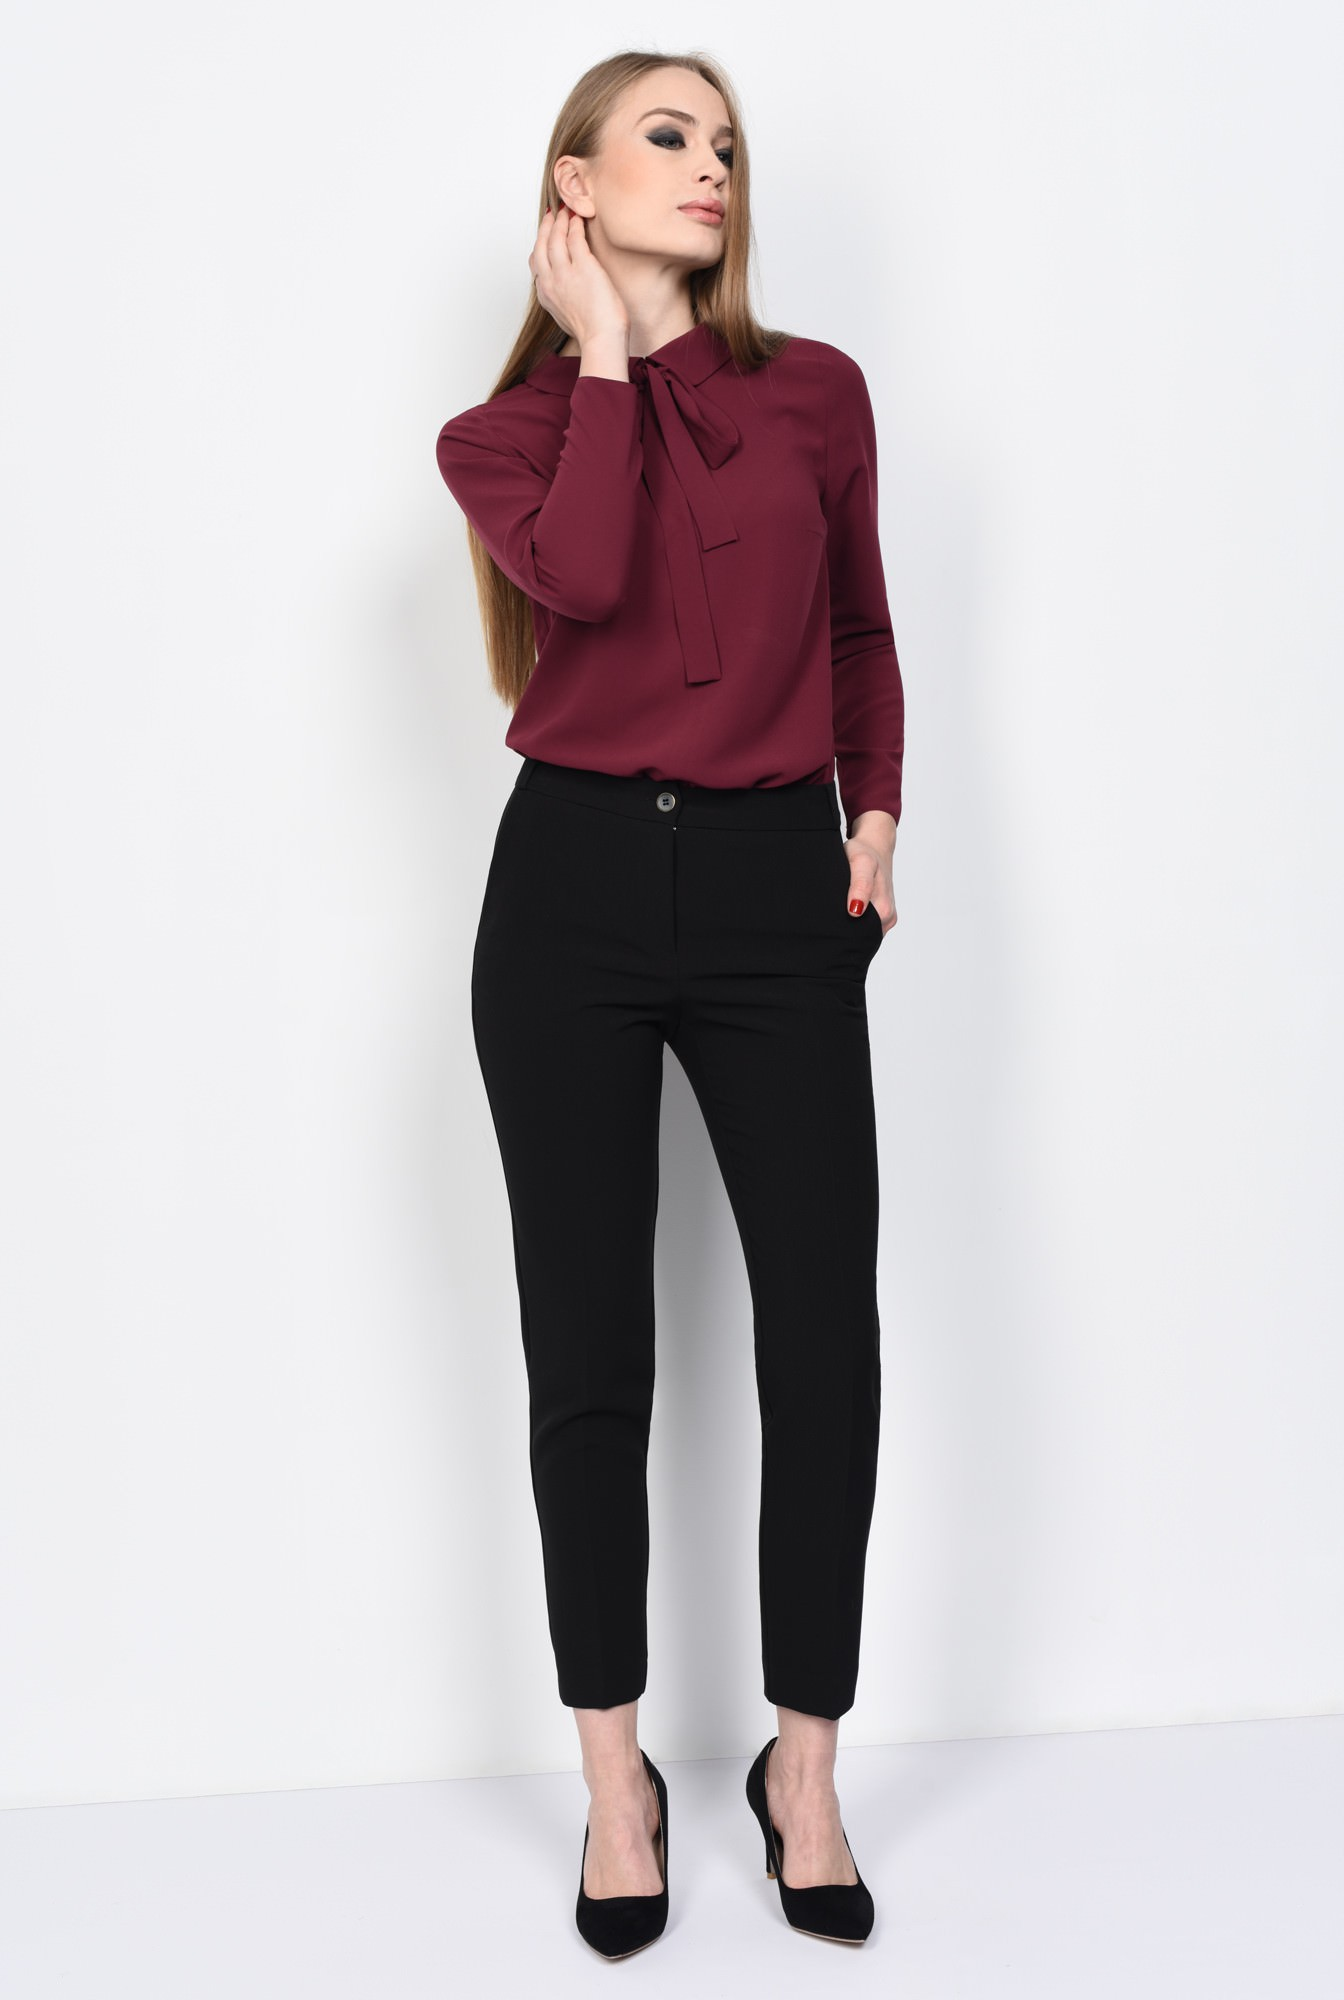 3 - PANTALON OFFICE PT 123-NEGRU